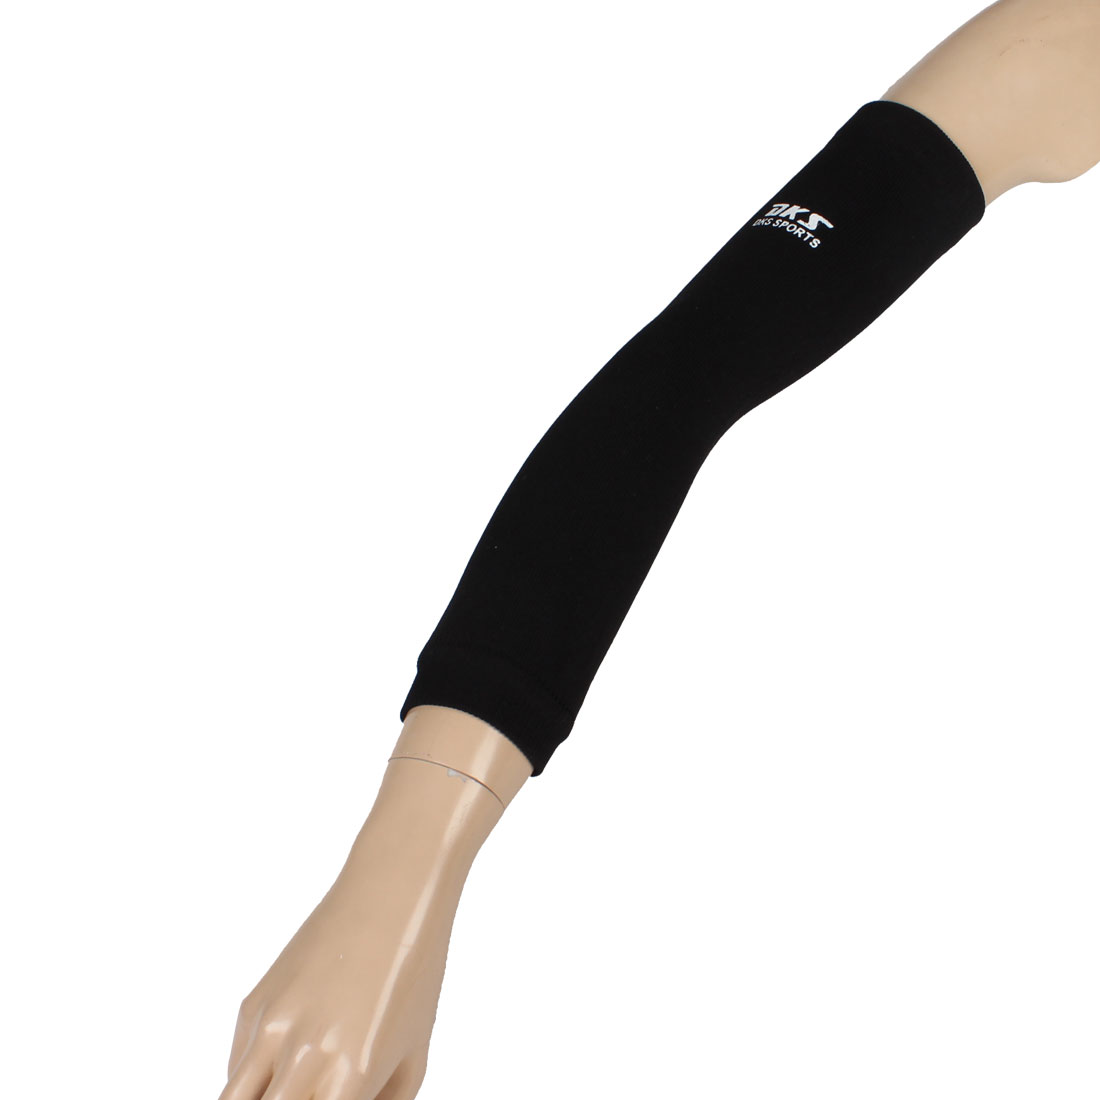 Tennis Golf Stretchy Pull Over Sleeve Elbow Protective Support Black